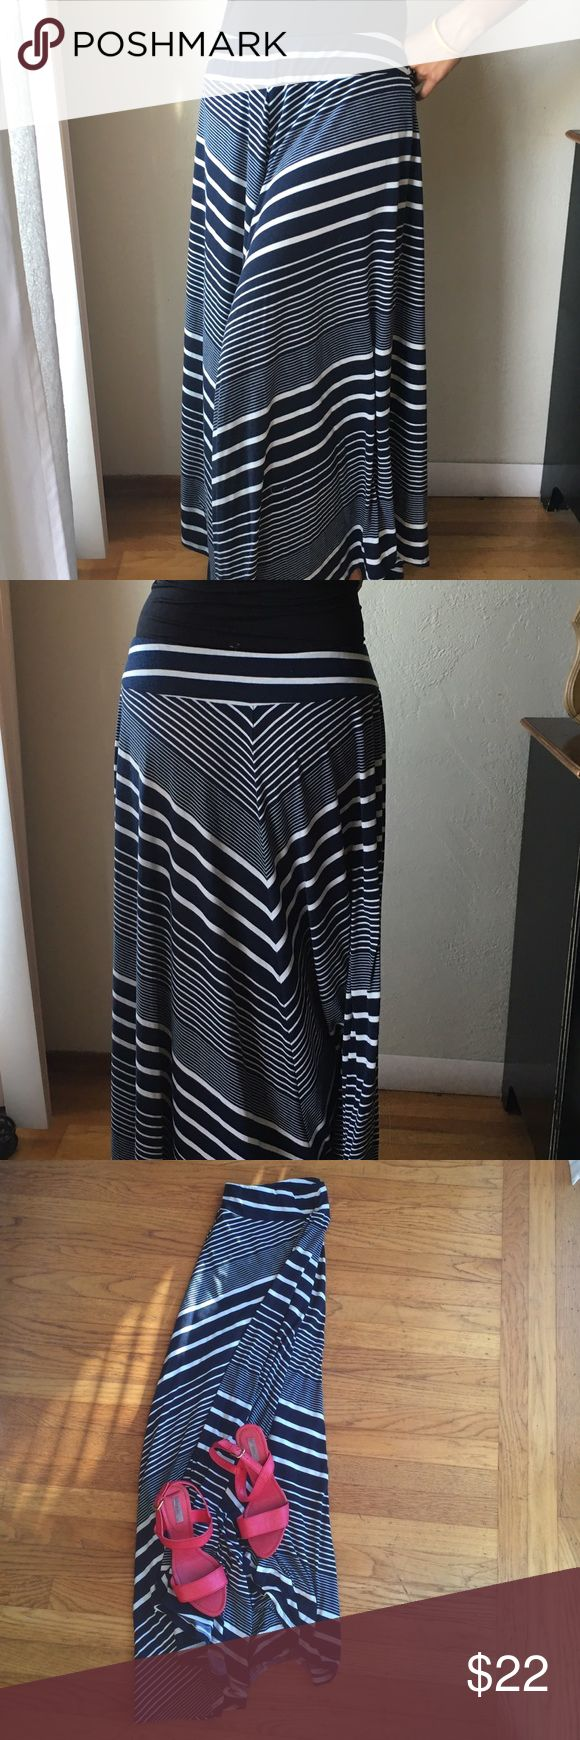 "Metaphor large blue & white striped maxi skirt L Extra long maxi dress by Metaphor. 95% polyester 5% spandex. 32"" elastic waist, 39"" length (at longest point, bottom of skirt is rounded). Slight wear - minor fading from wash. 2 for 15% off. Lmk any questions. Metaphor Skirts Maxi"